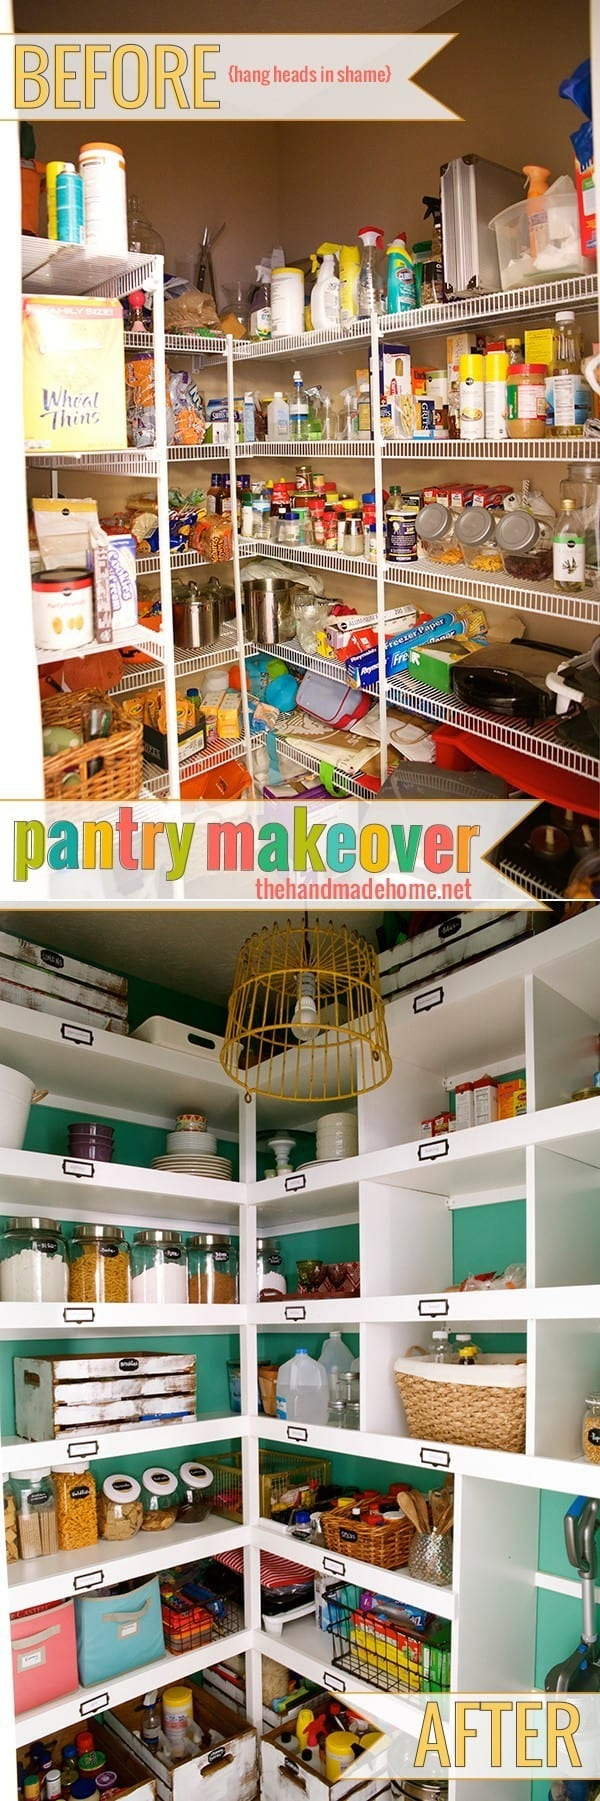 pantry_makeover_before_and_after